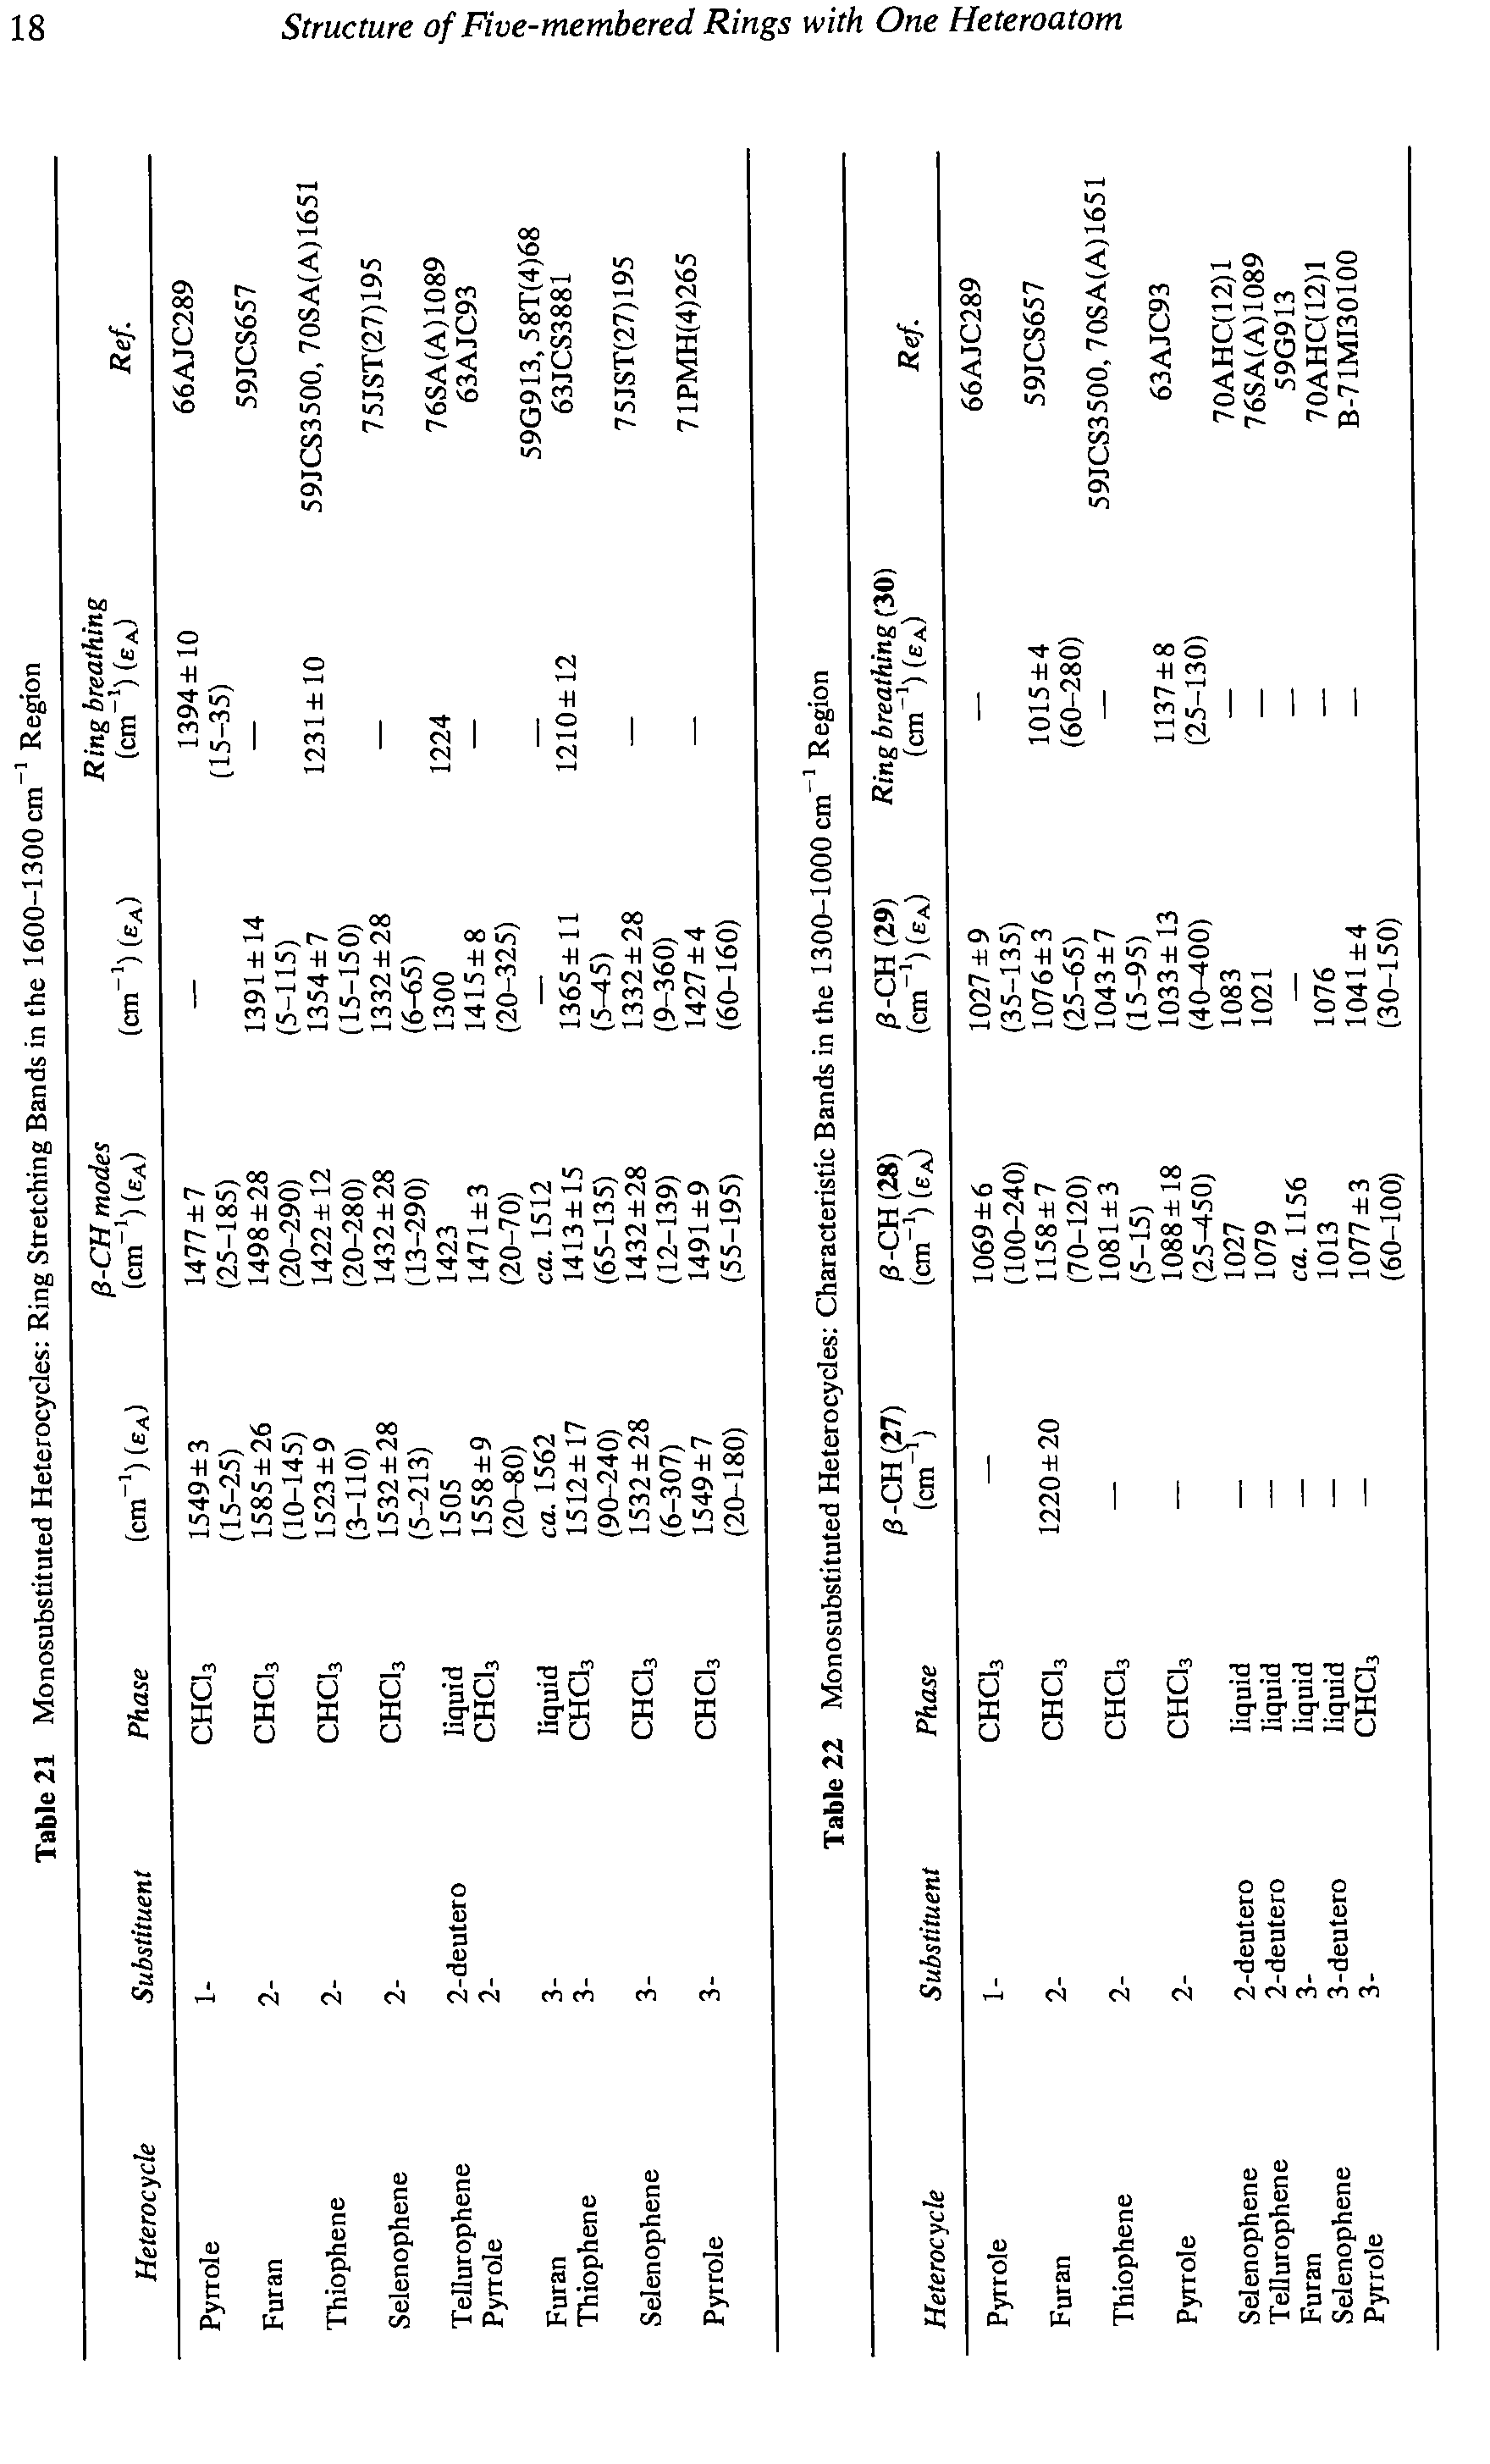 Table 22 Monosubstituted Heterocycles Characteristic Bands in the 1300-1000 cm Region...